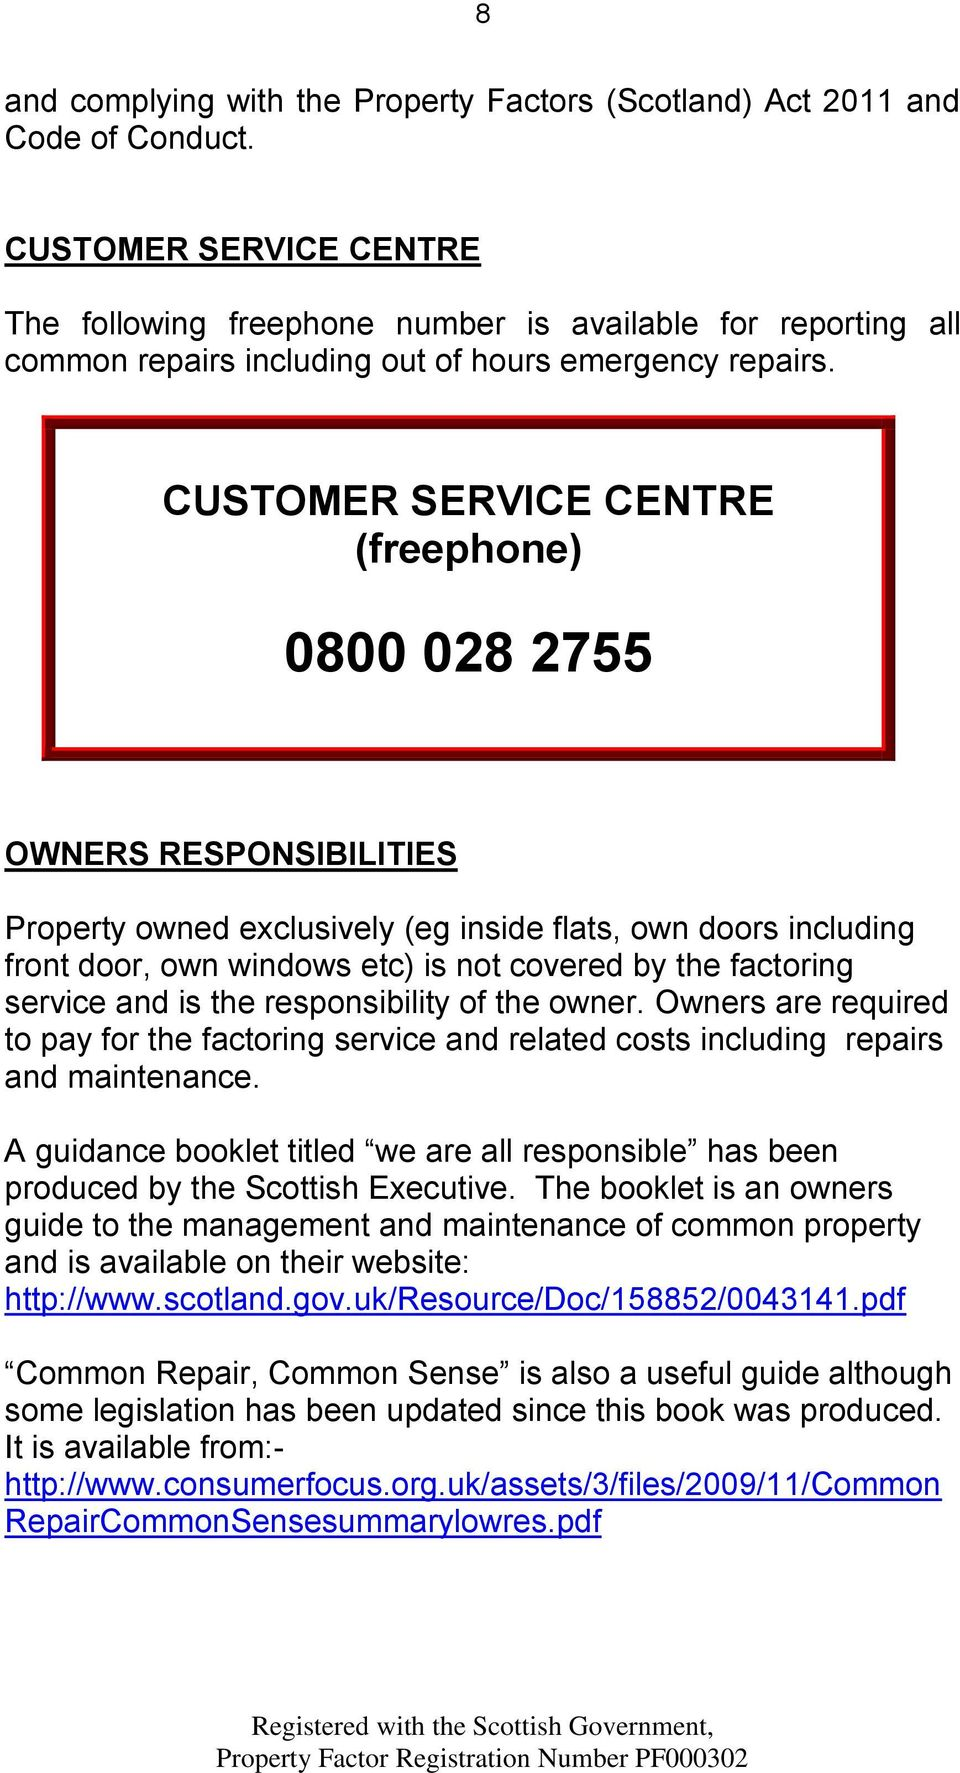 CUSTOMER SERVICE CENTRE (freephone) 0800 028 2755 OWNERS RESPONSIBILITIES Property owned exclusively (eg inside flats, own doors including front door, own windows etc) is not covered by the factoring